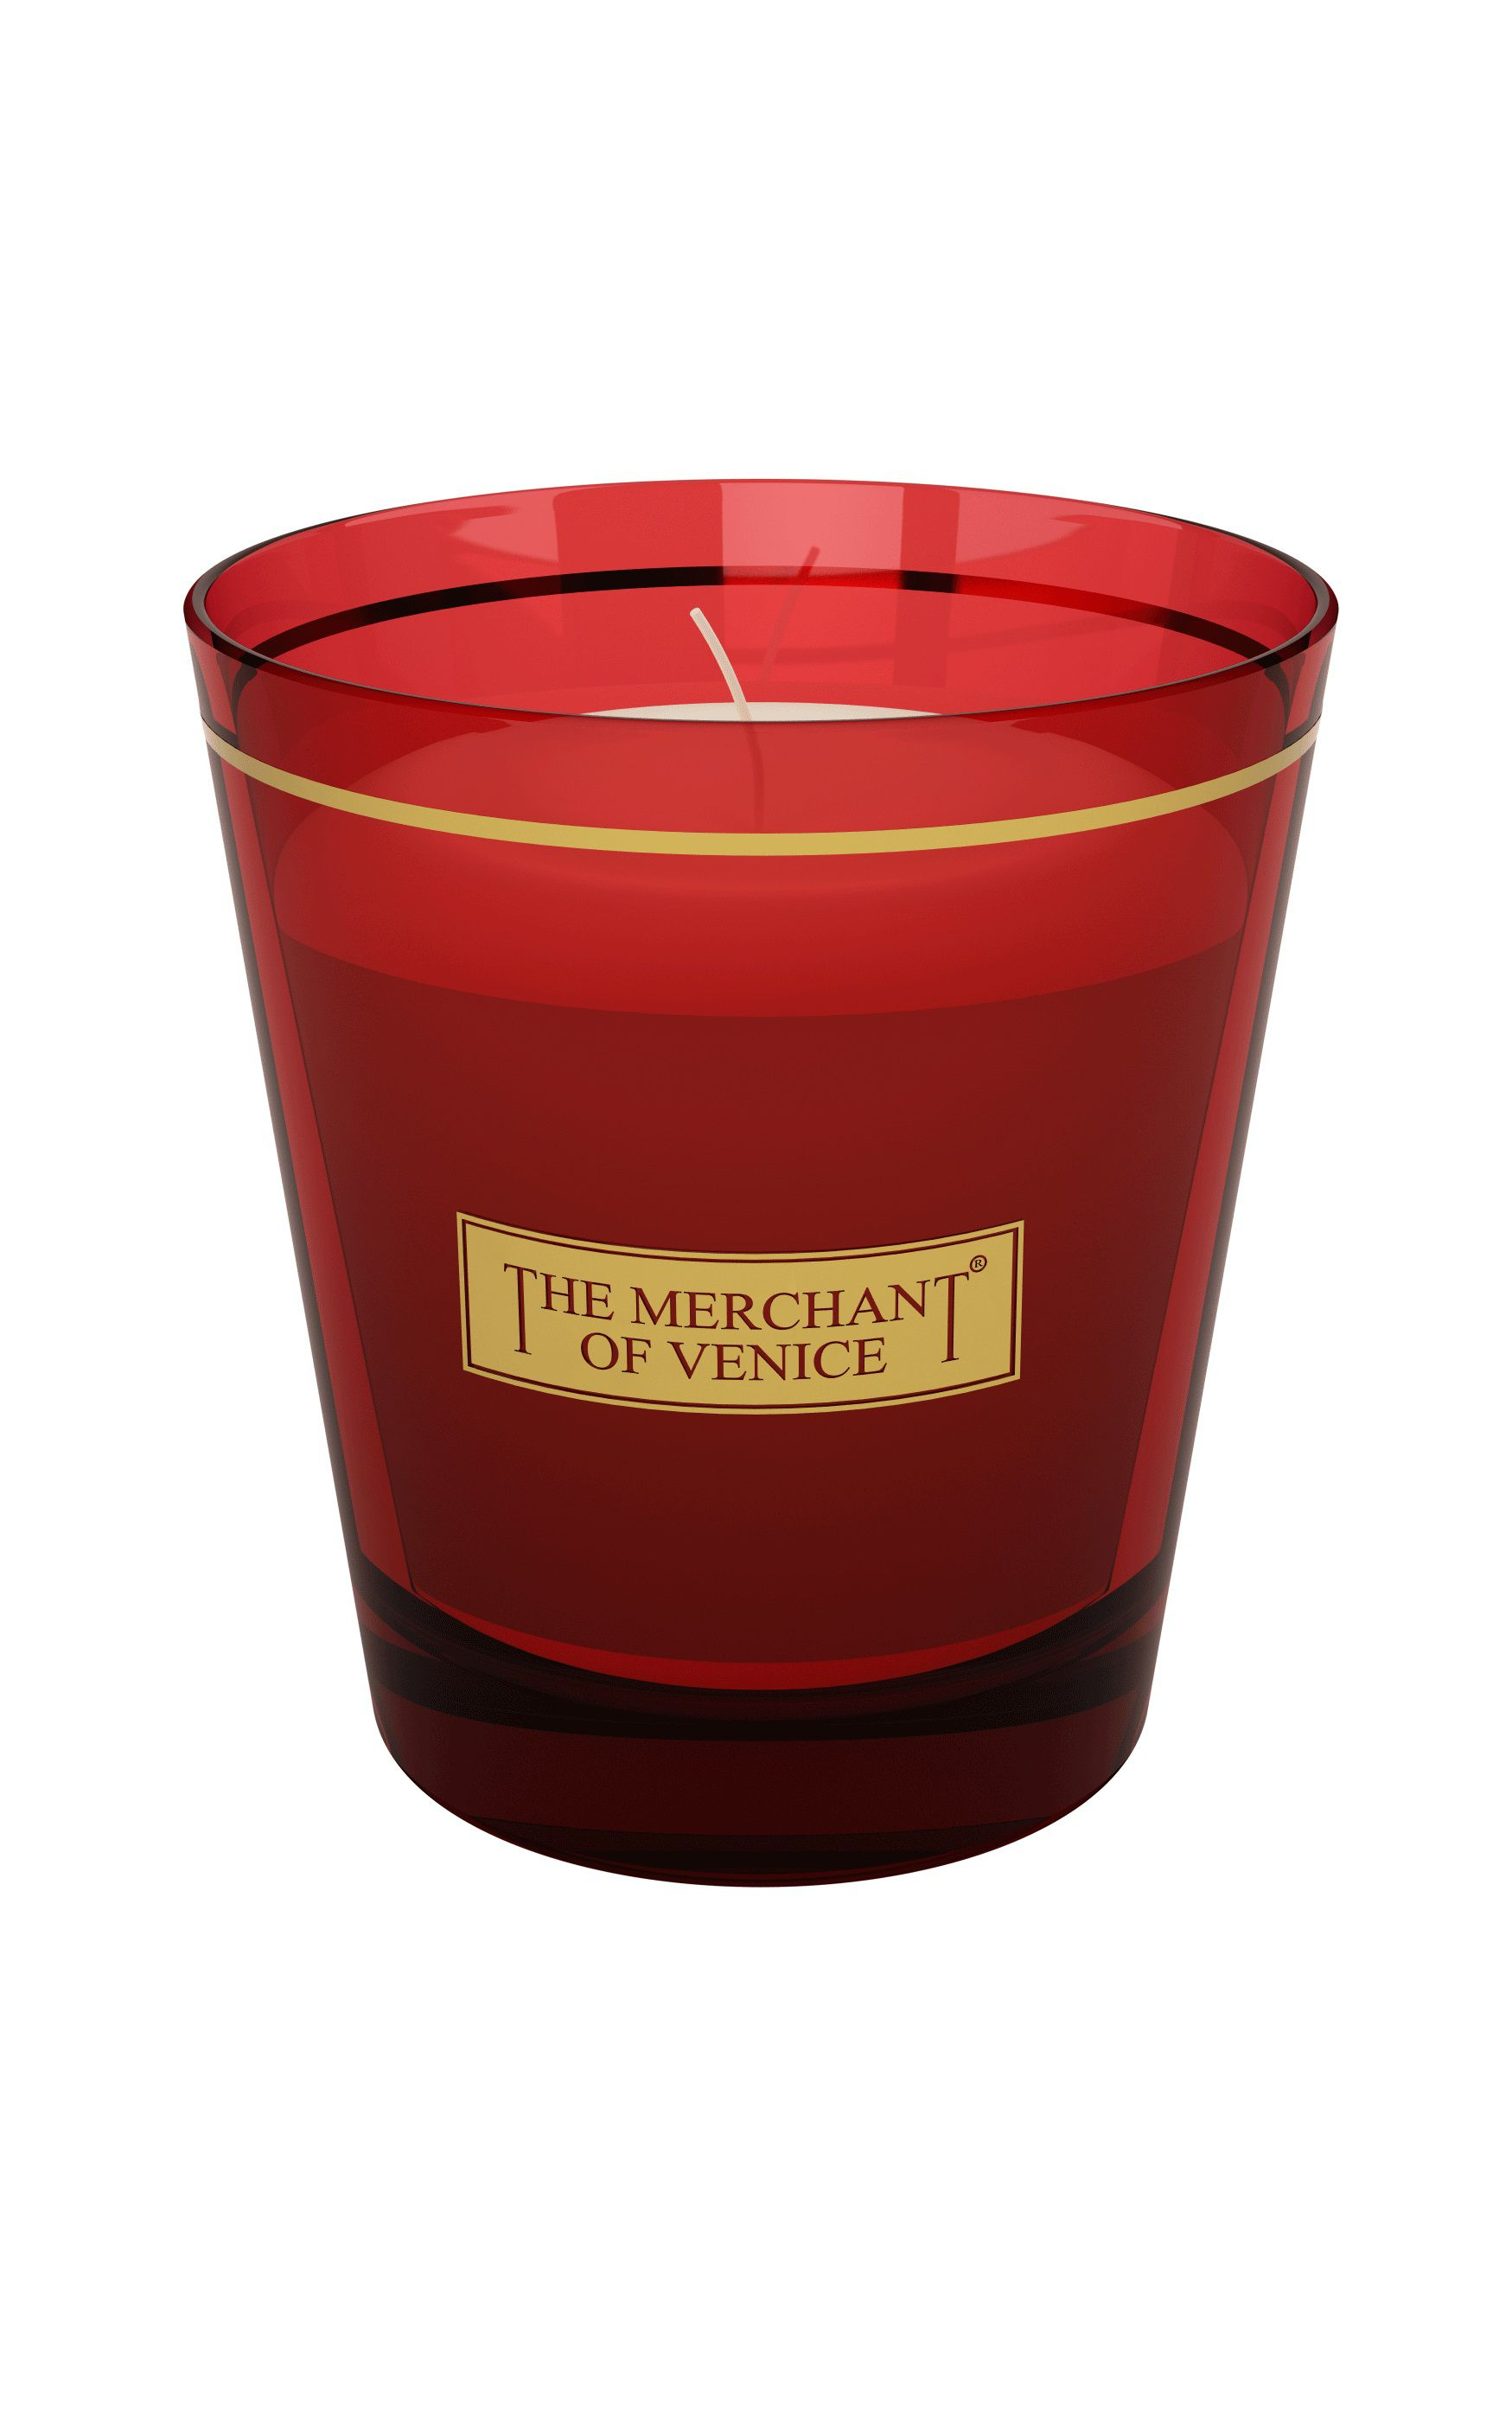 Image of The Merchant Of Venice Egyptian Linen Perfumed Candle 230g